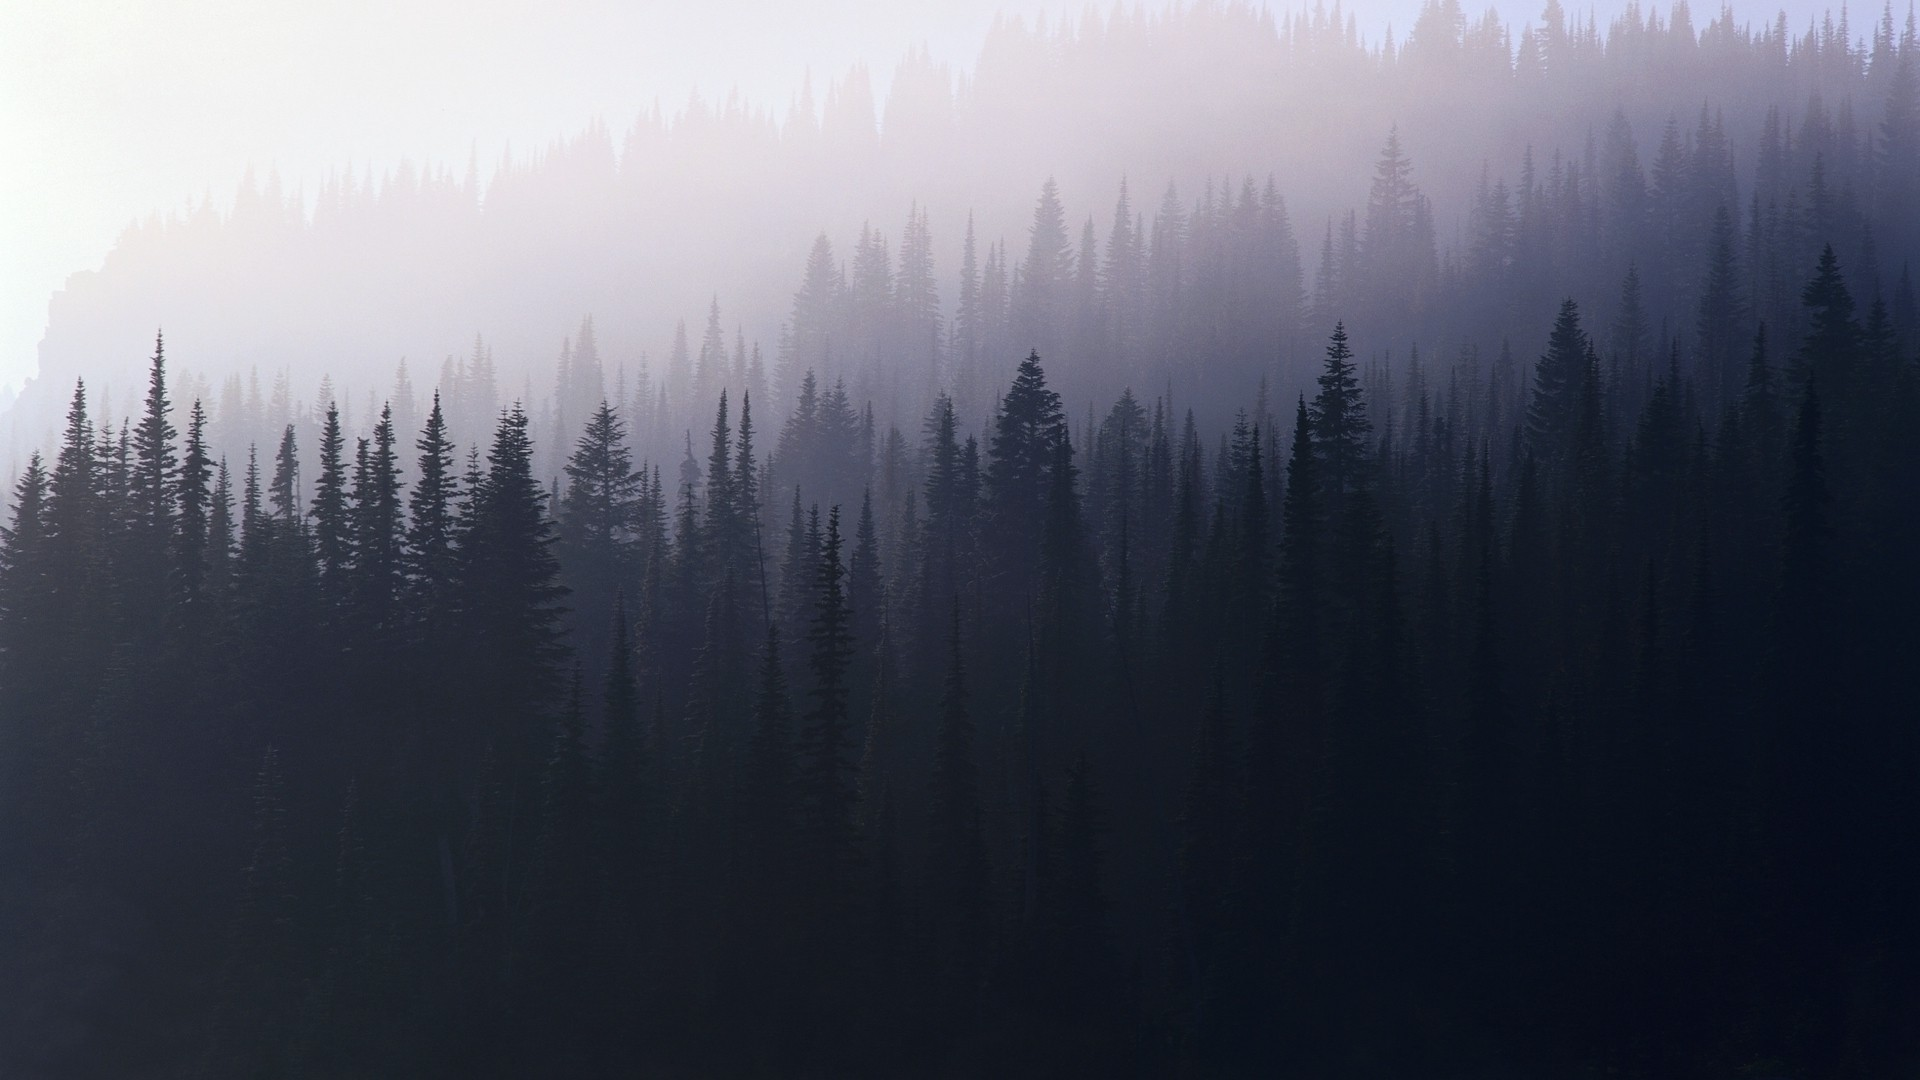 forest violet trees mist pine trees nature